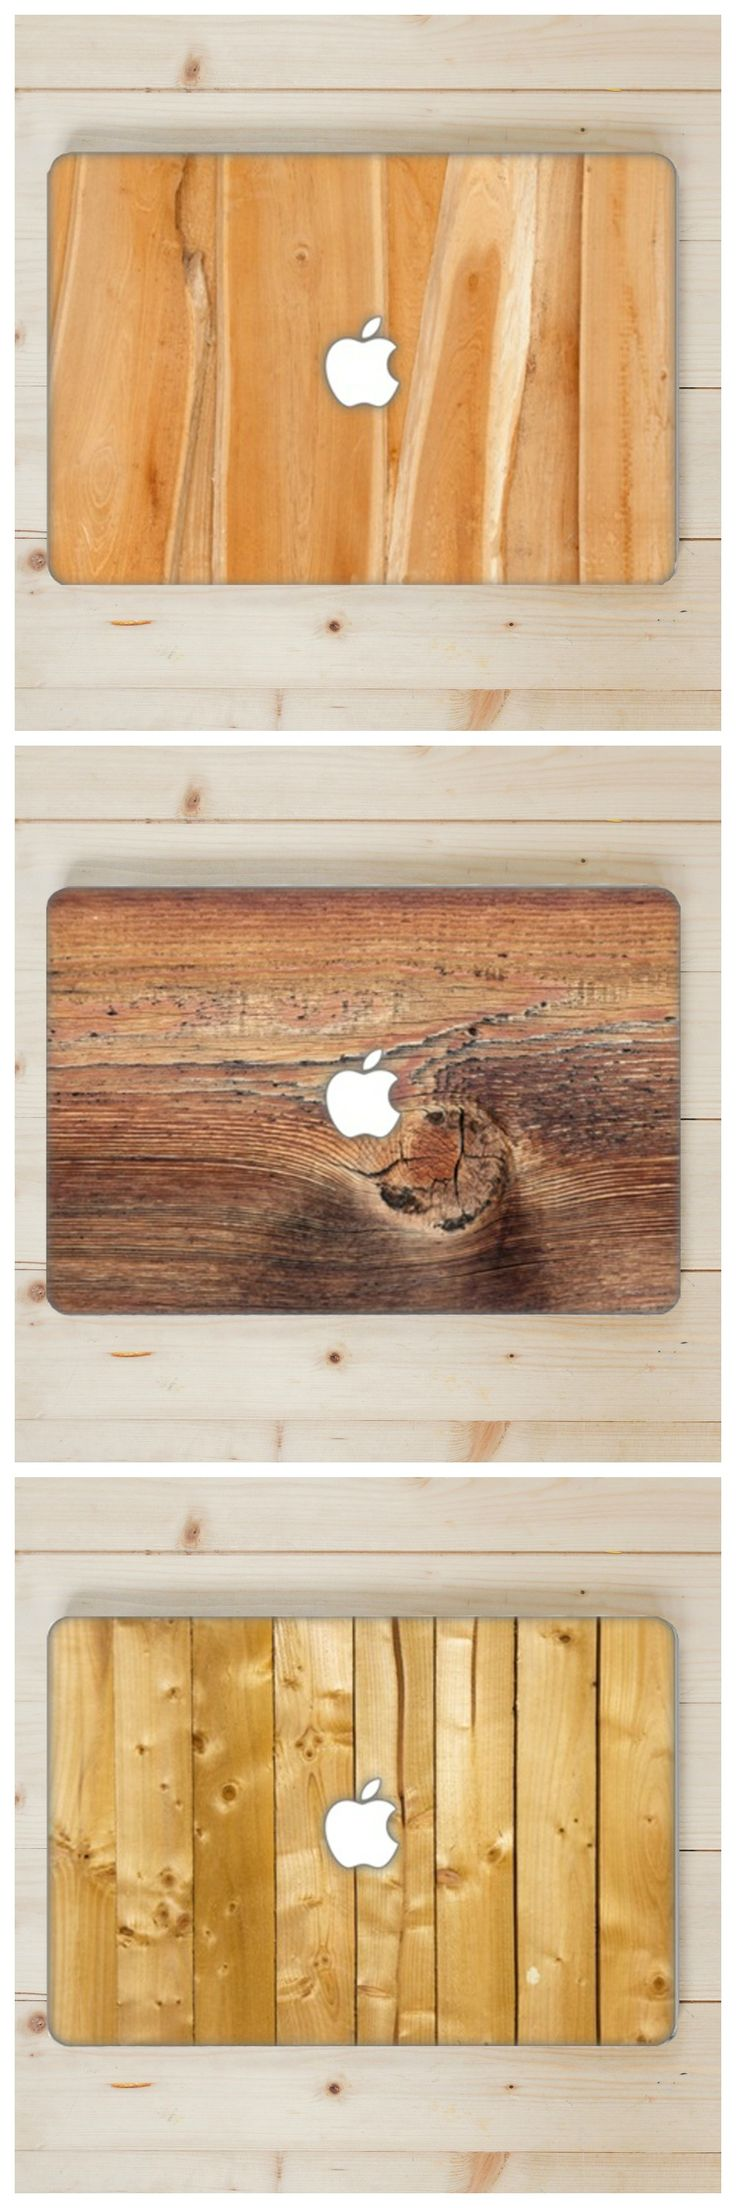 Hard Plastic Macbook Cases, MacBook and Laptop Skins Available in all designs :)